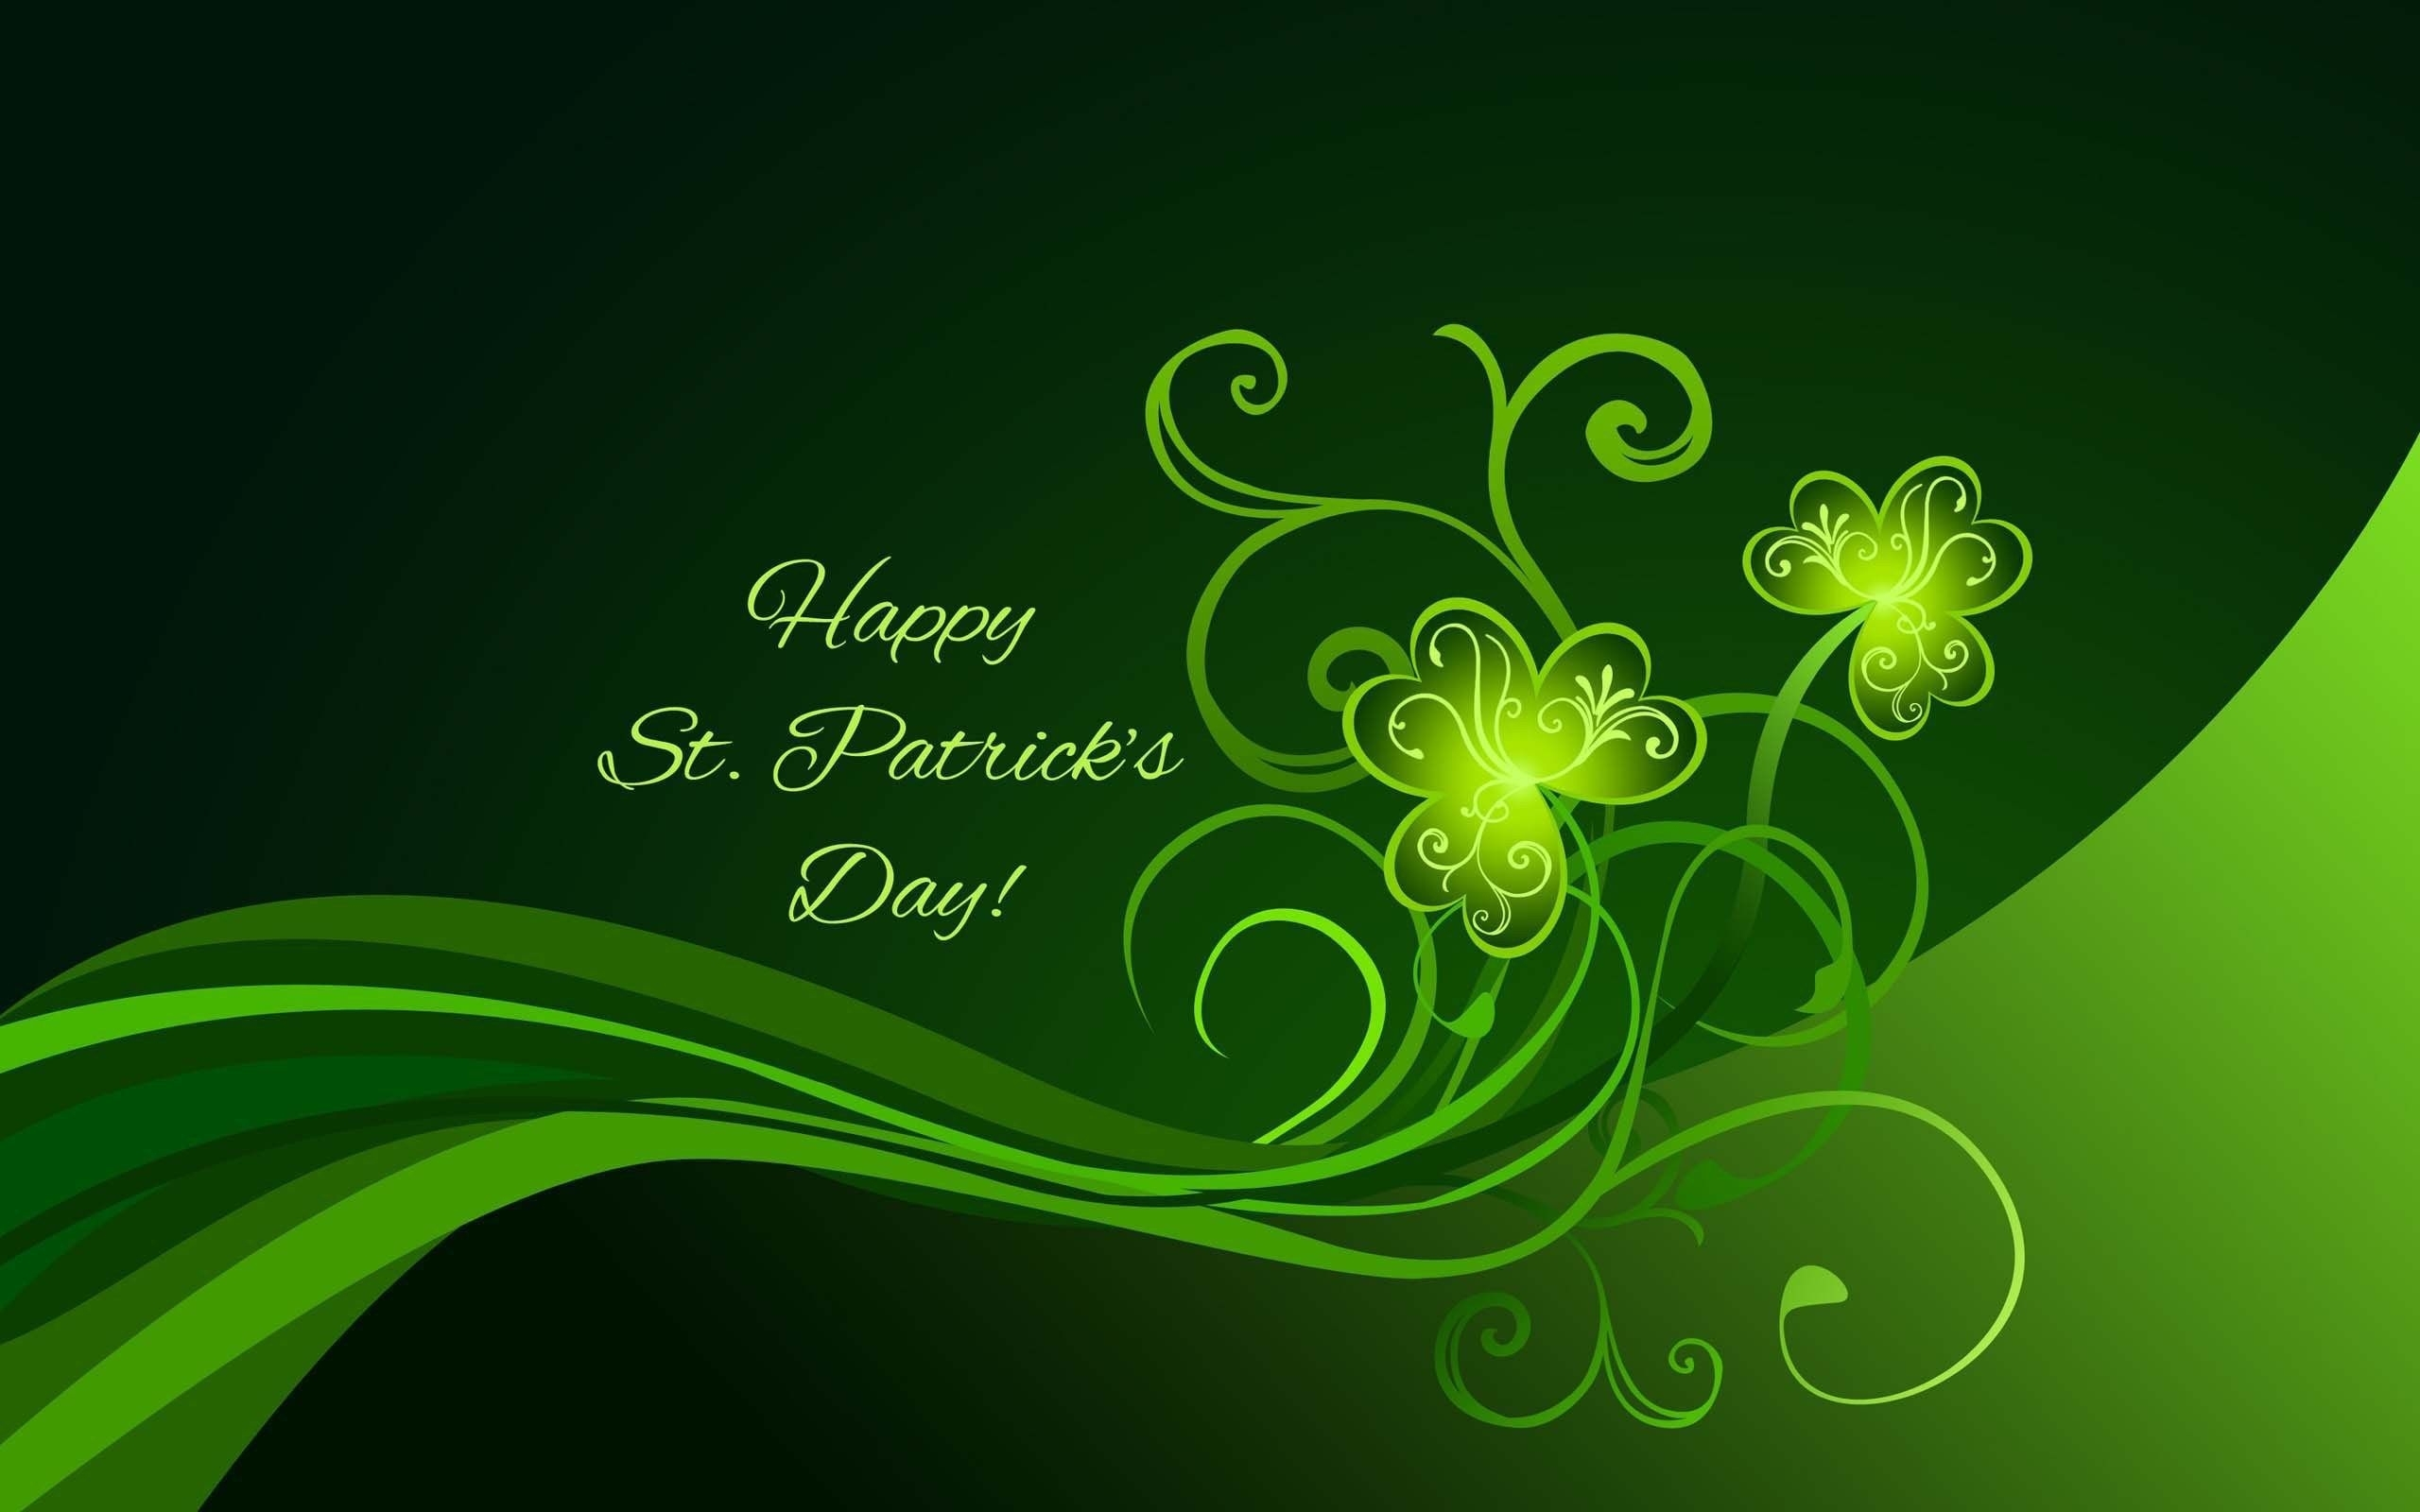 125072, saint patricks day category - free computer wallpaper for